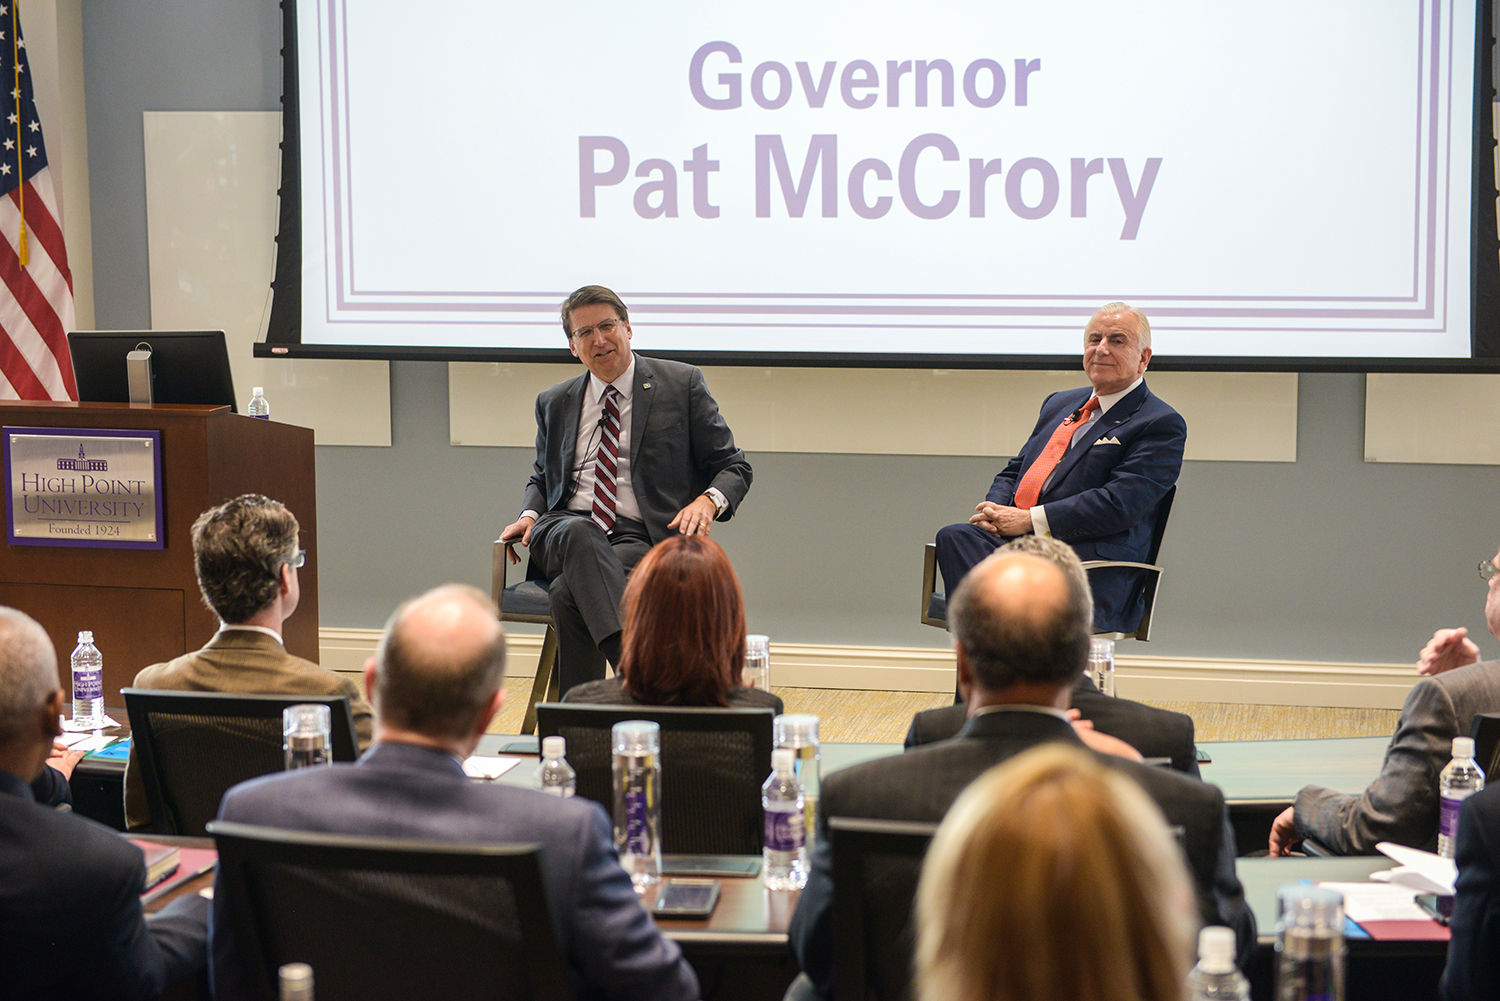 Gov. McCrory and Dr. Qubein presented during the President's Forum earlier today.